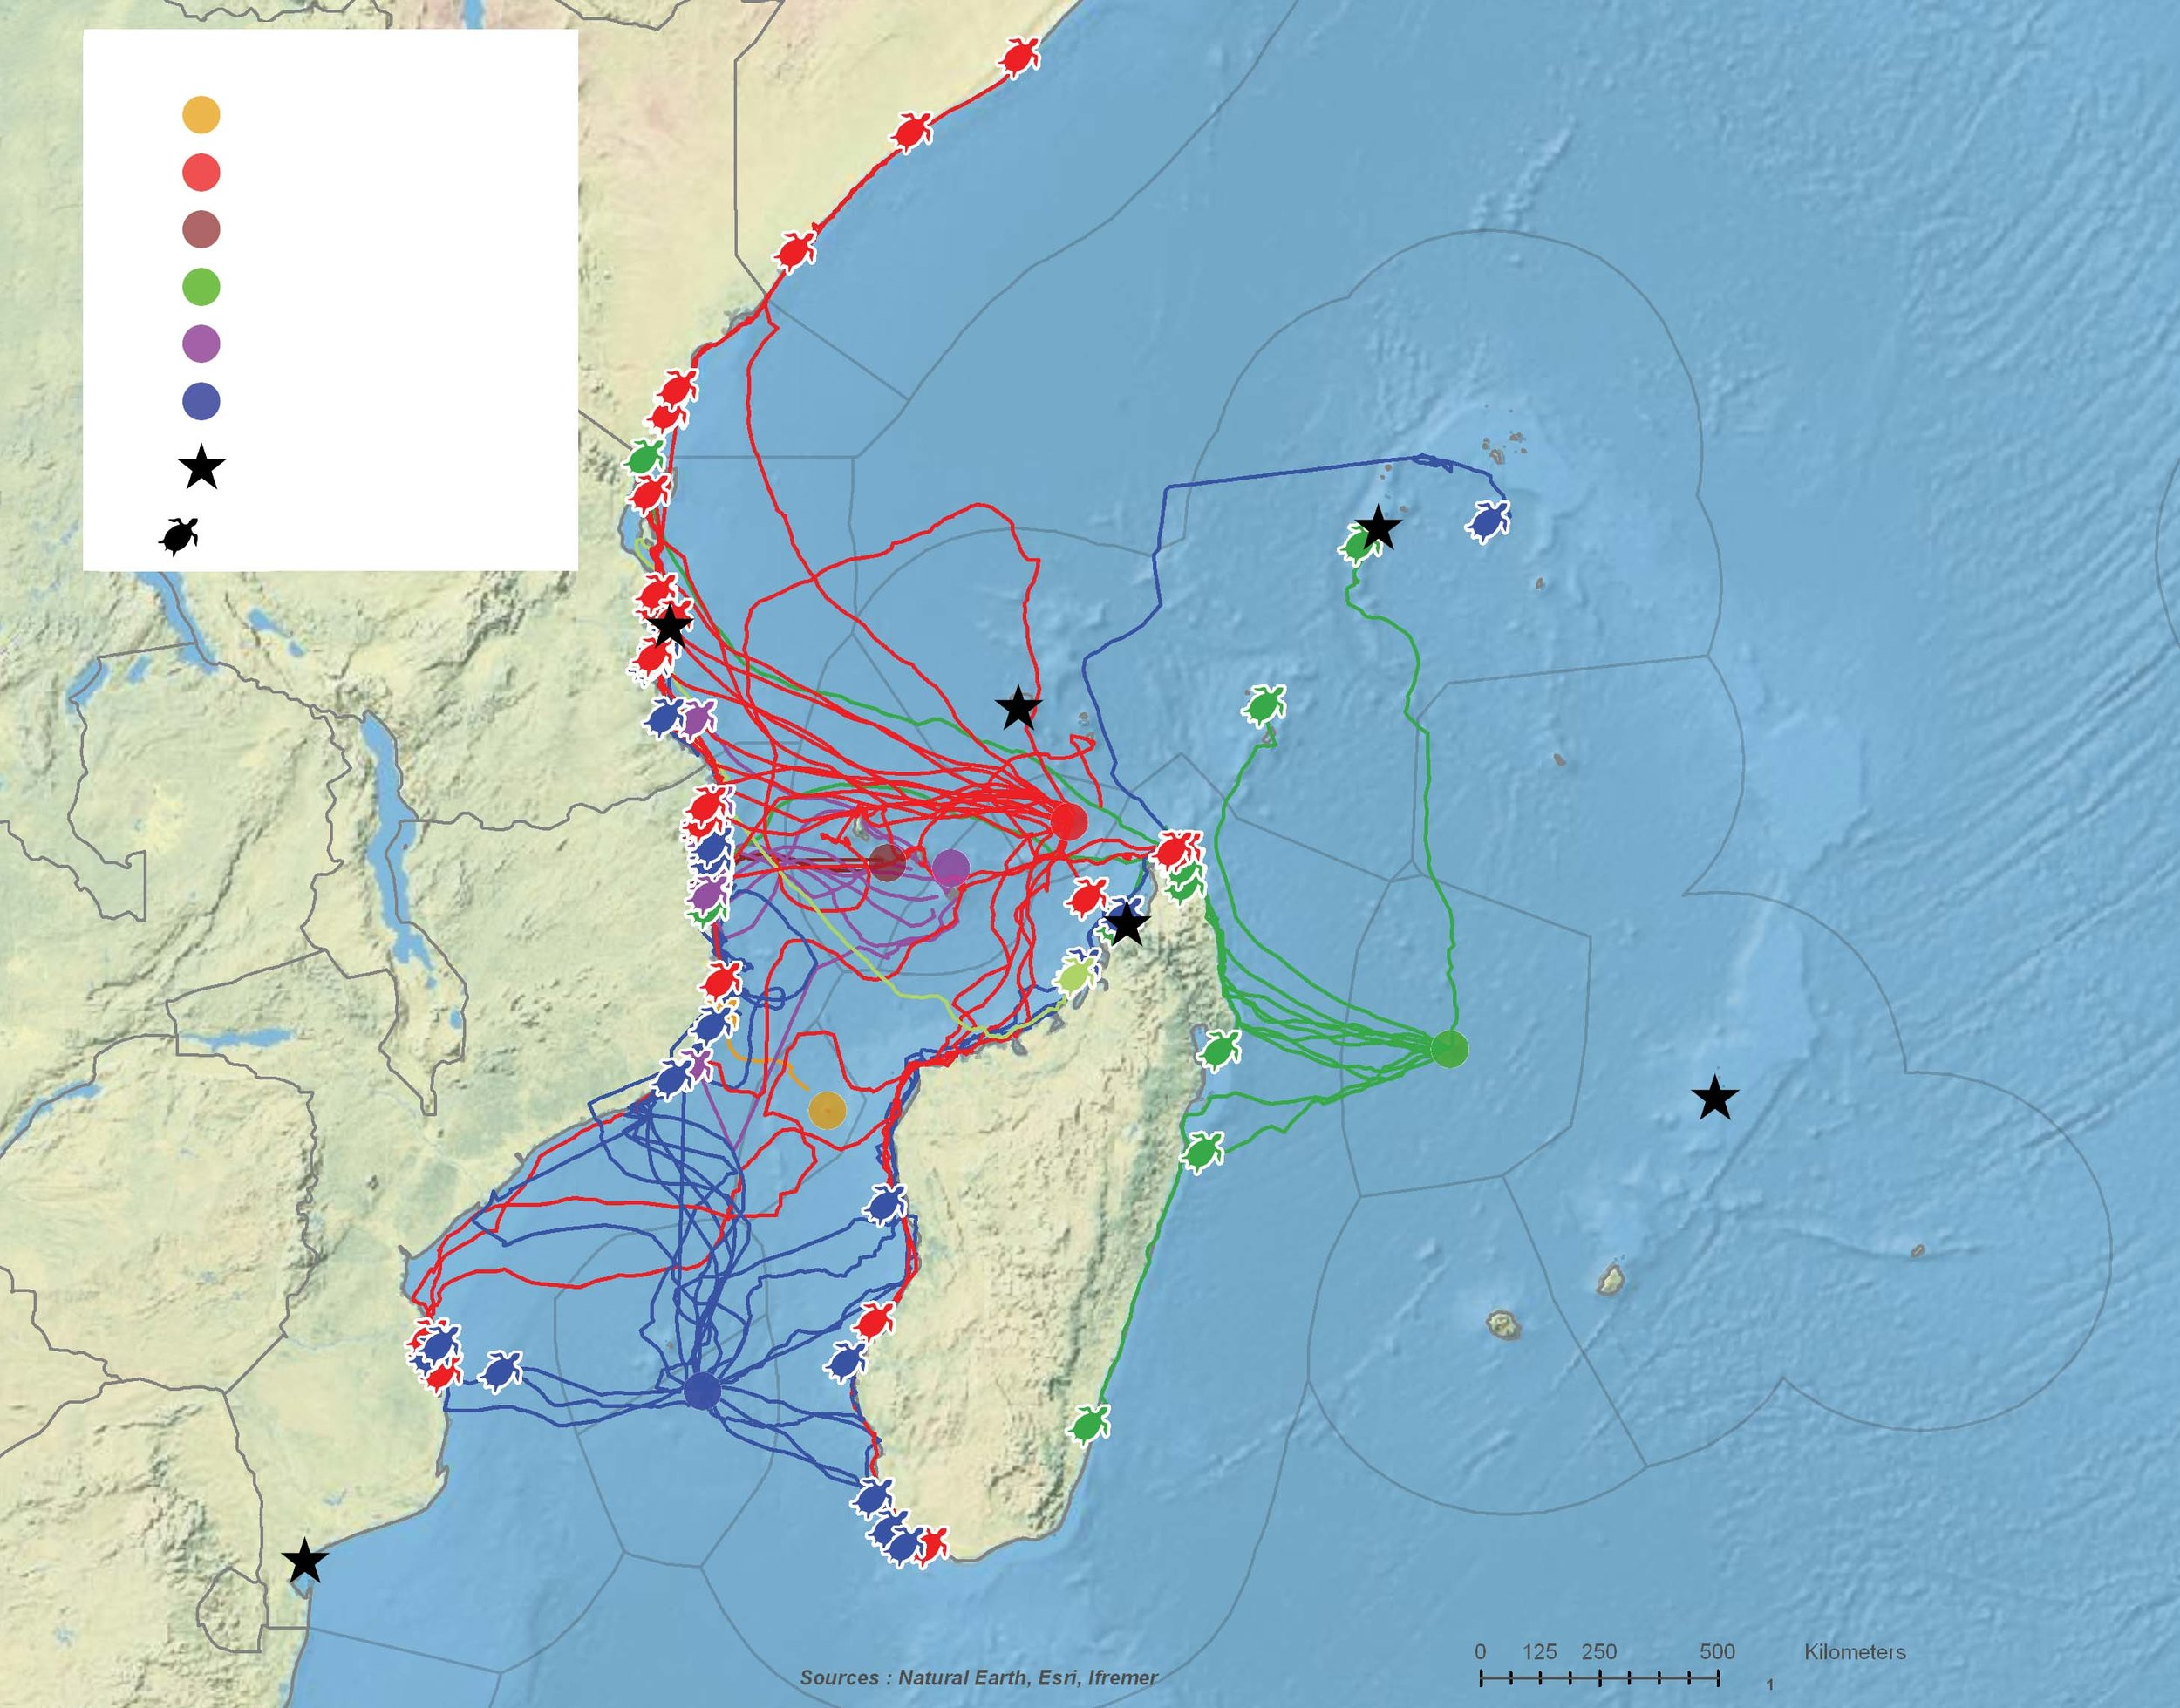 Movements and feeding sites of 64 green turtles tracked after nesting throughout the Southwest Indian Ocean. Track colors correspond to the tag deployment sites, which are shown as colored dots. Black stars represent future deployment sites.